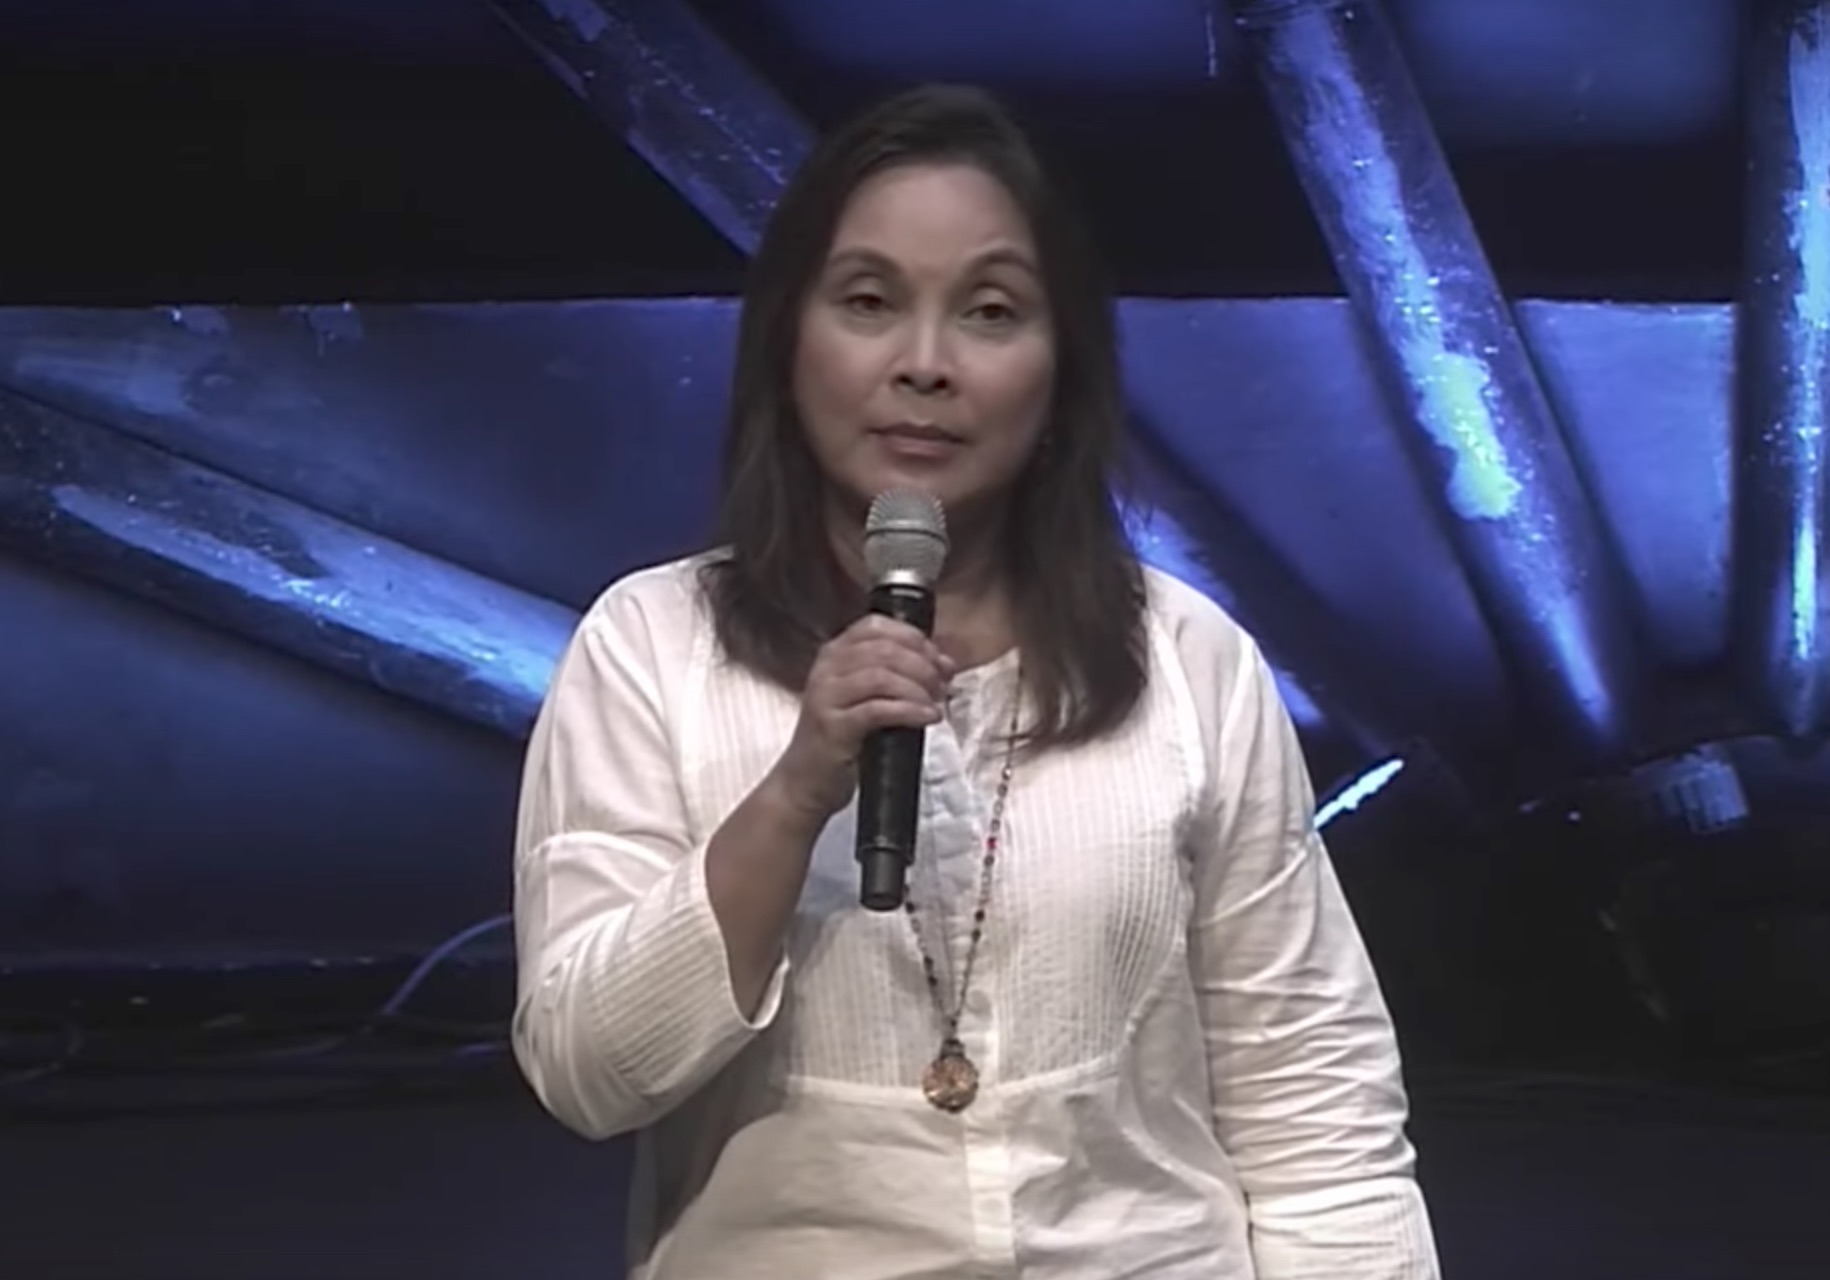 DISASTER RISK REDUCTION. Senator Loren Legarda shares at least 9 ways Filipinos can help mitigate the impact of disasters on their lives.